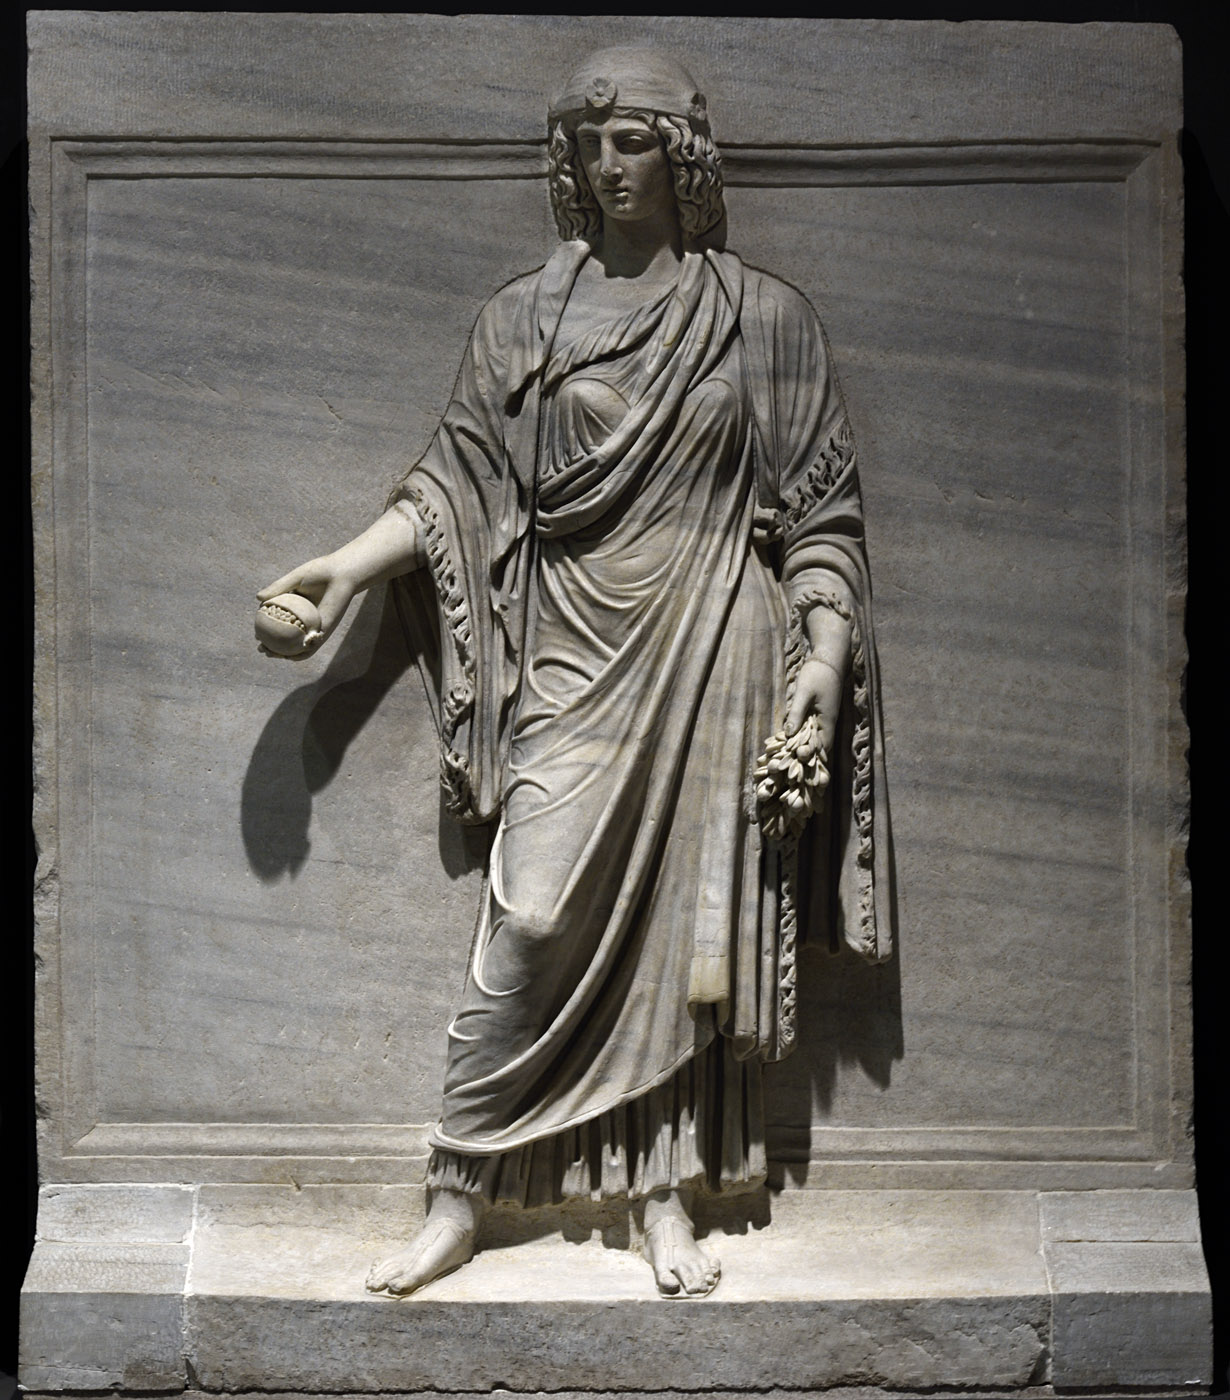 Personification of a province (Egypt?). Relief of the Temple of Hadrian on Campus Martius. Proconnessian marble. 138-145 CE. Inv. No. 138. Rome, Roman National Museum, Palazzo Massimo alle Terme